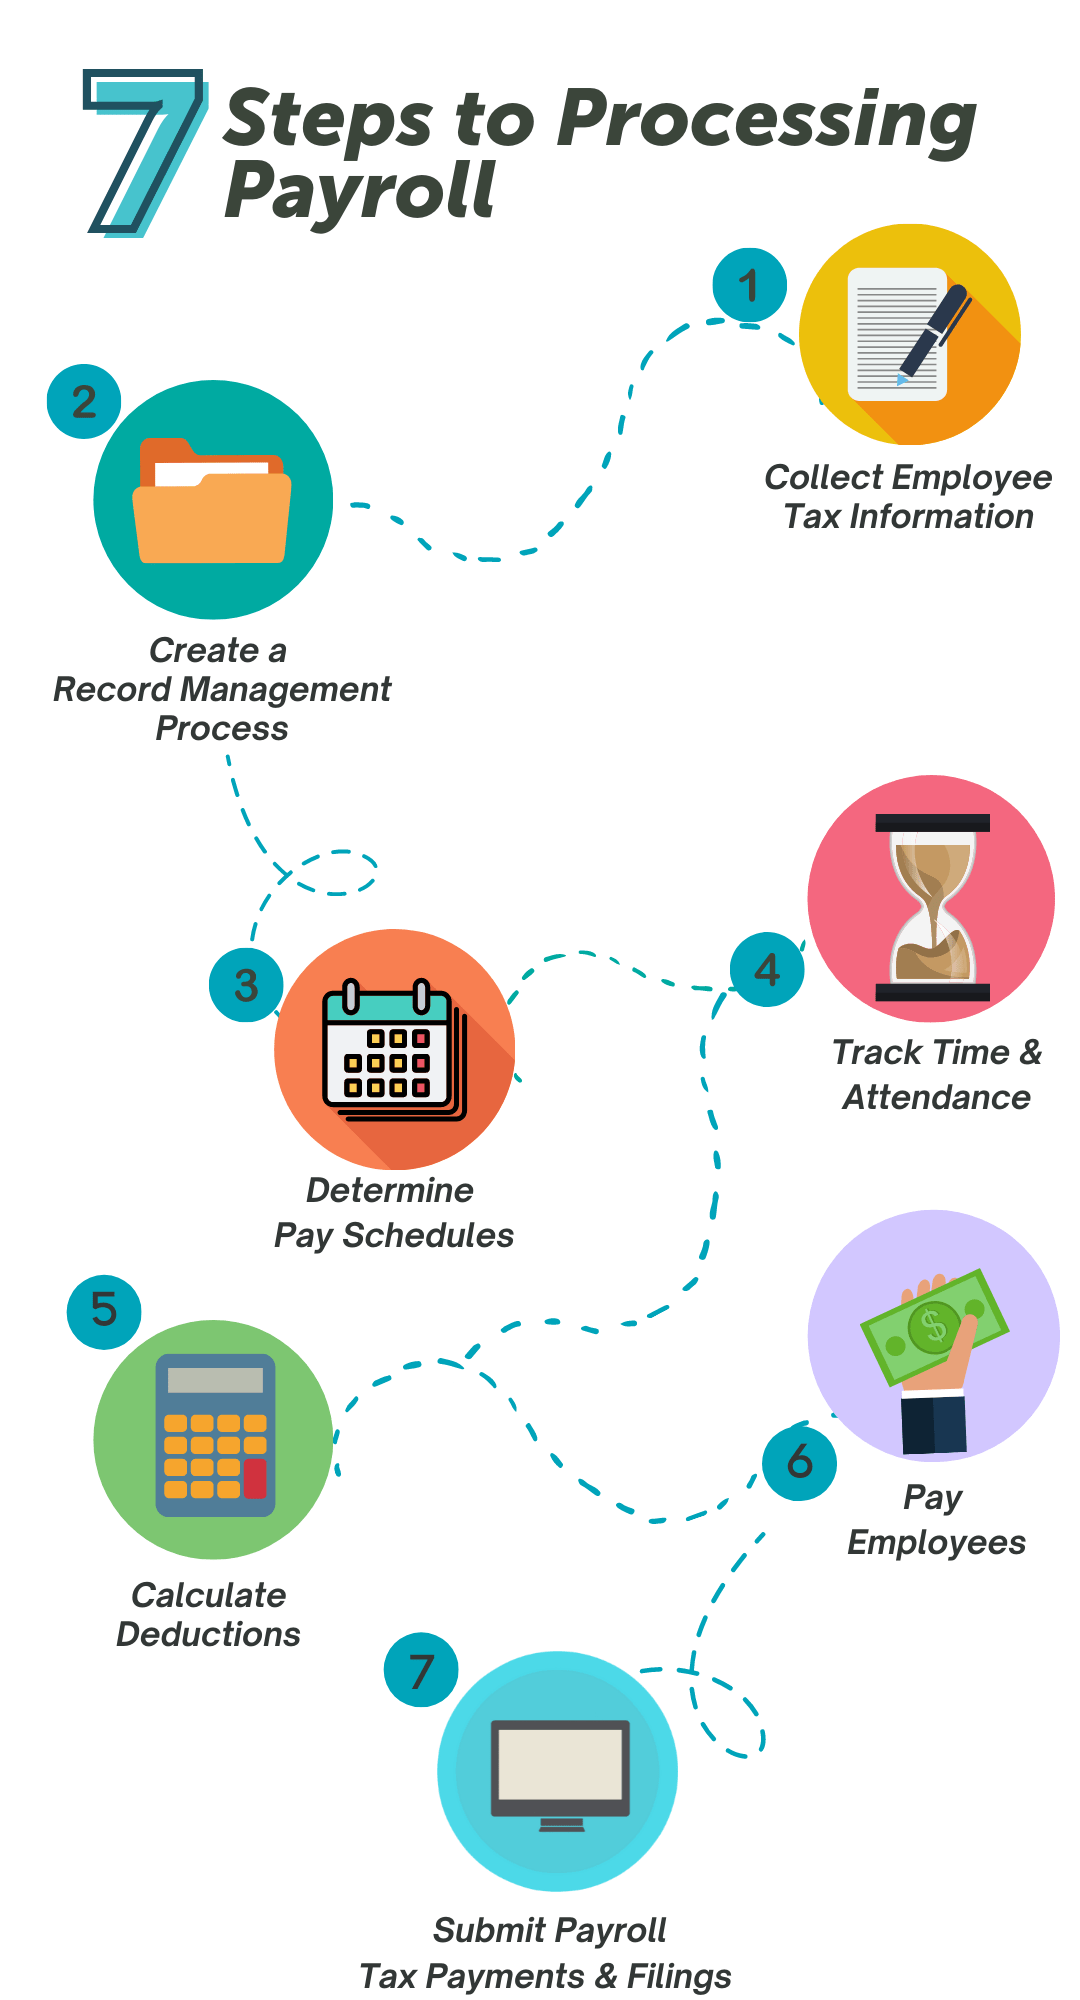 How to Process Payroll: A 7 Step Guide